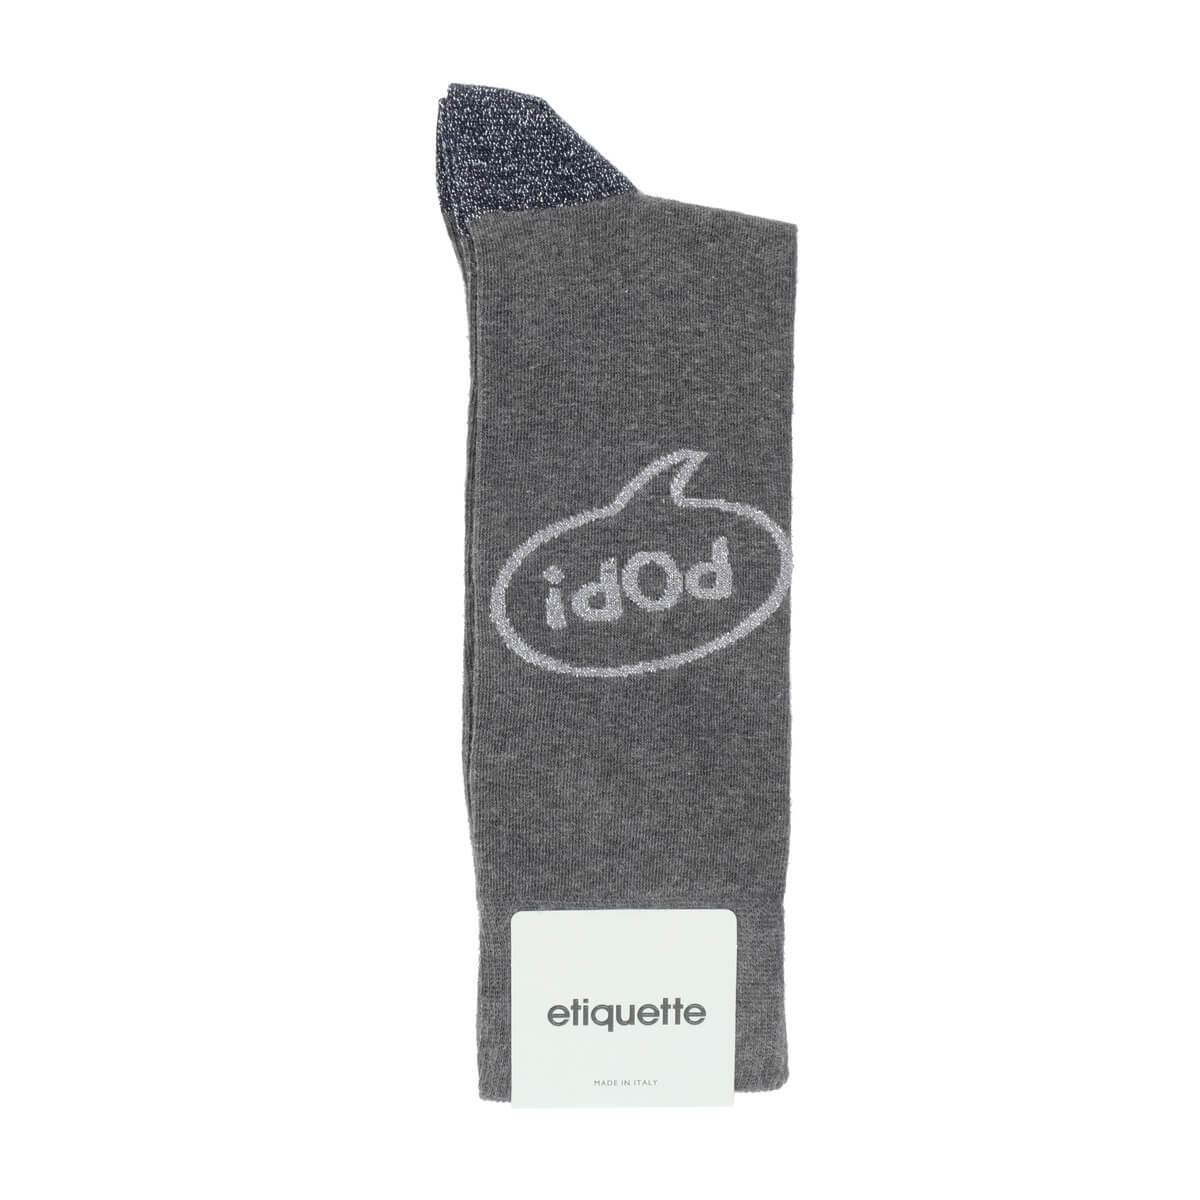 Popist - Dark Grey - Mens Socks | Etiquette Clothiers Global Official